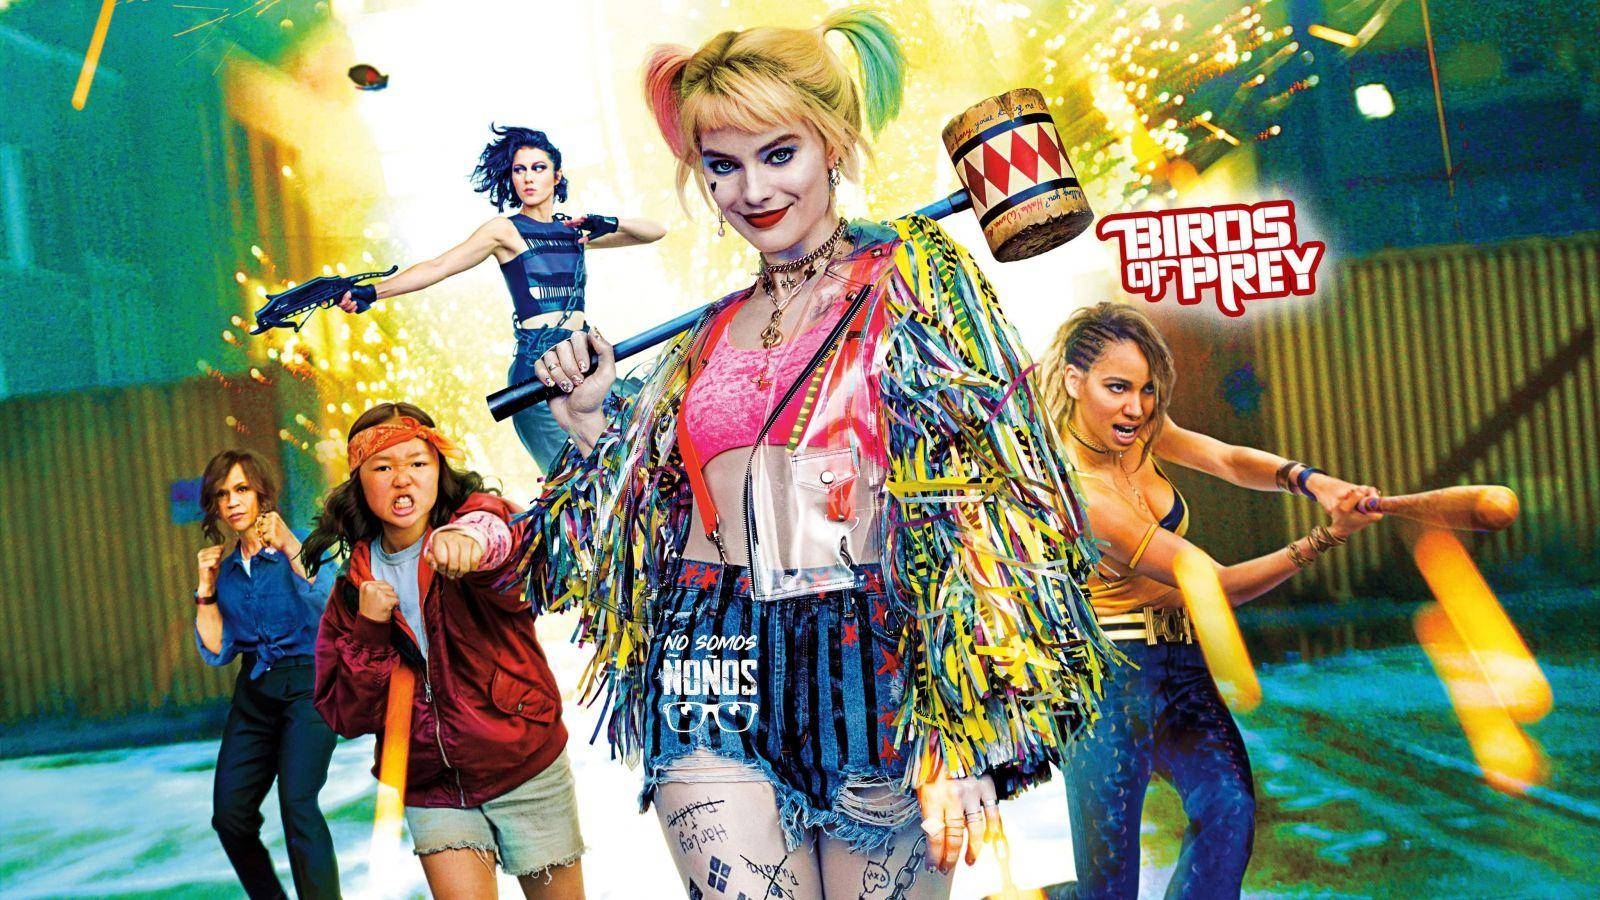 Reseña: Birds of Prey (and the Fantabulous Emancipation of One Harley Quinn)